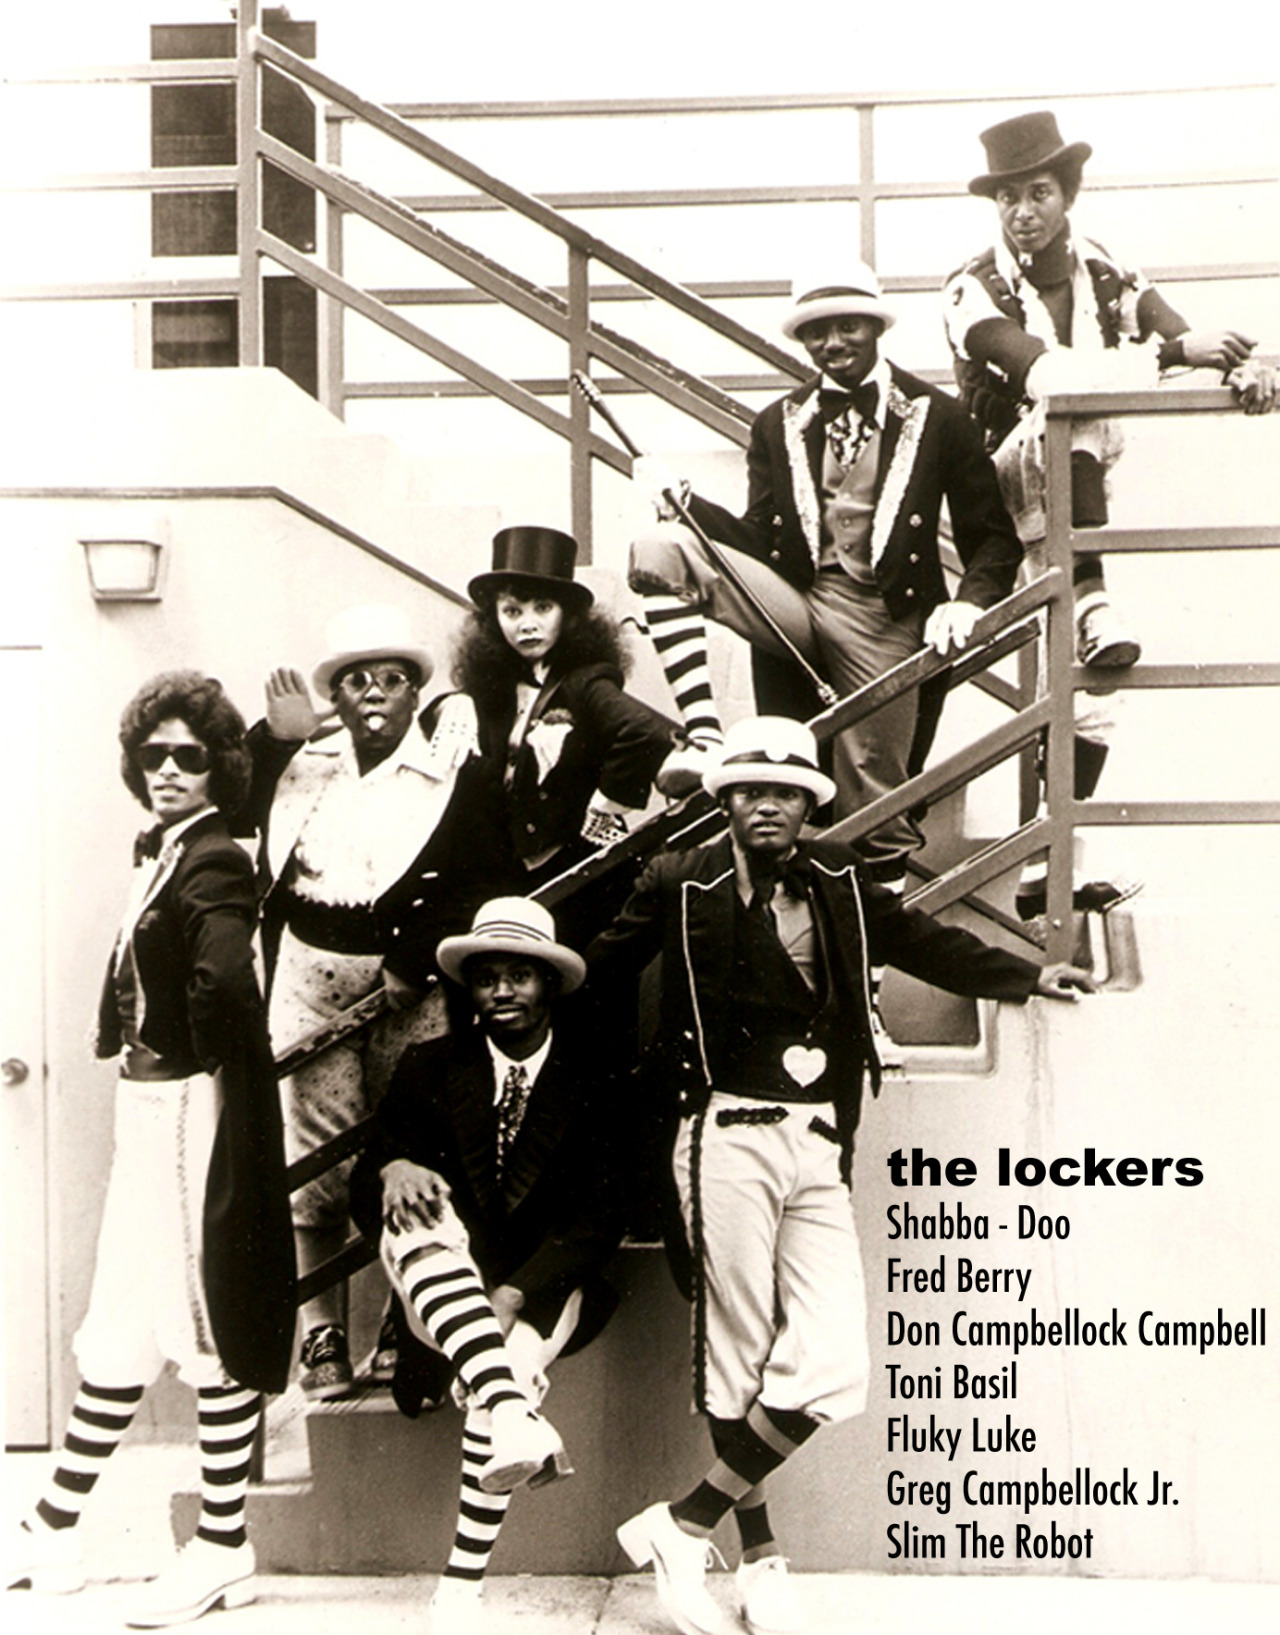 soulbrotherv2:  lustnspace:  The Lockers  Dance group from way back in the day.  Had everyone in the 'hood pop-locking.  Or trying to pop lock.